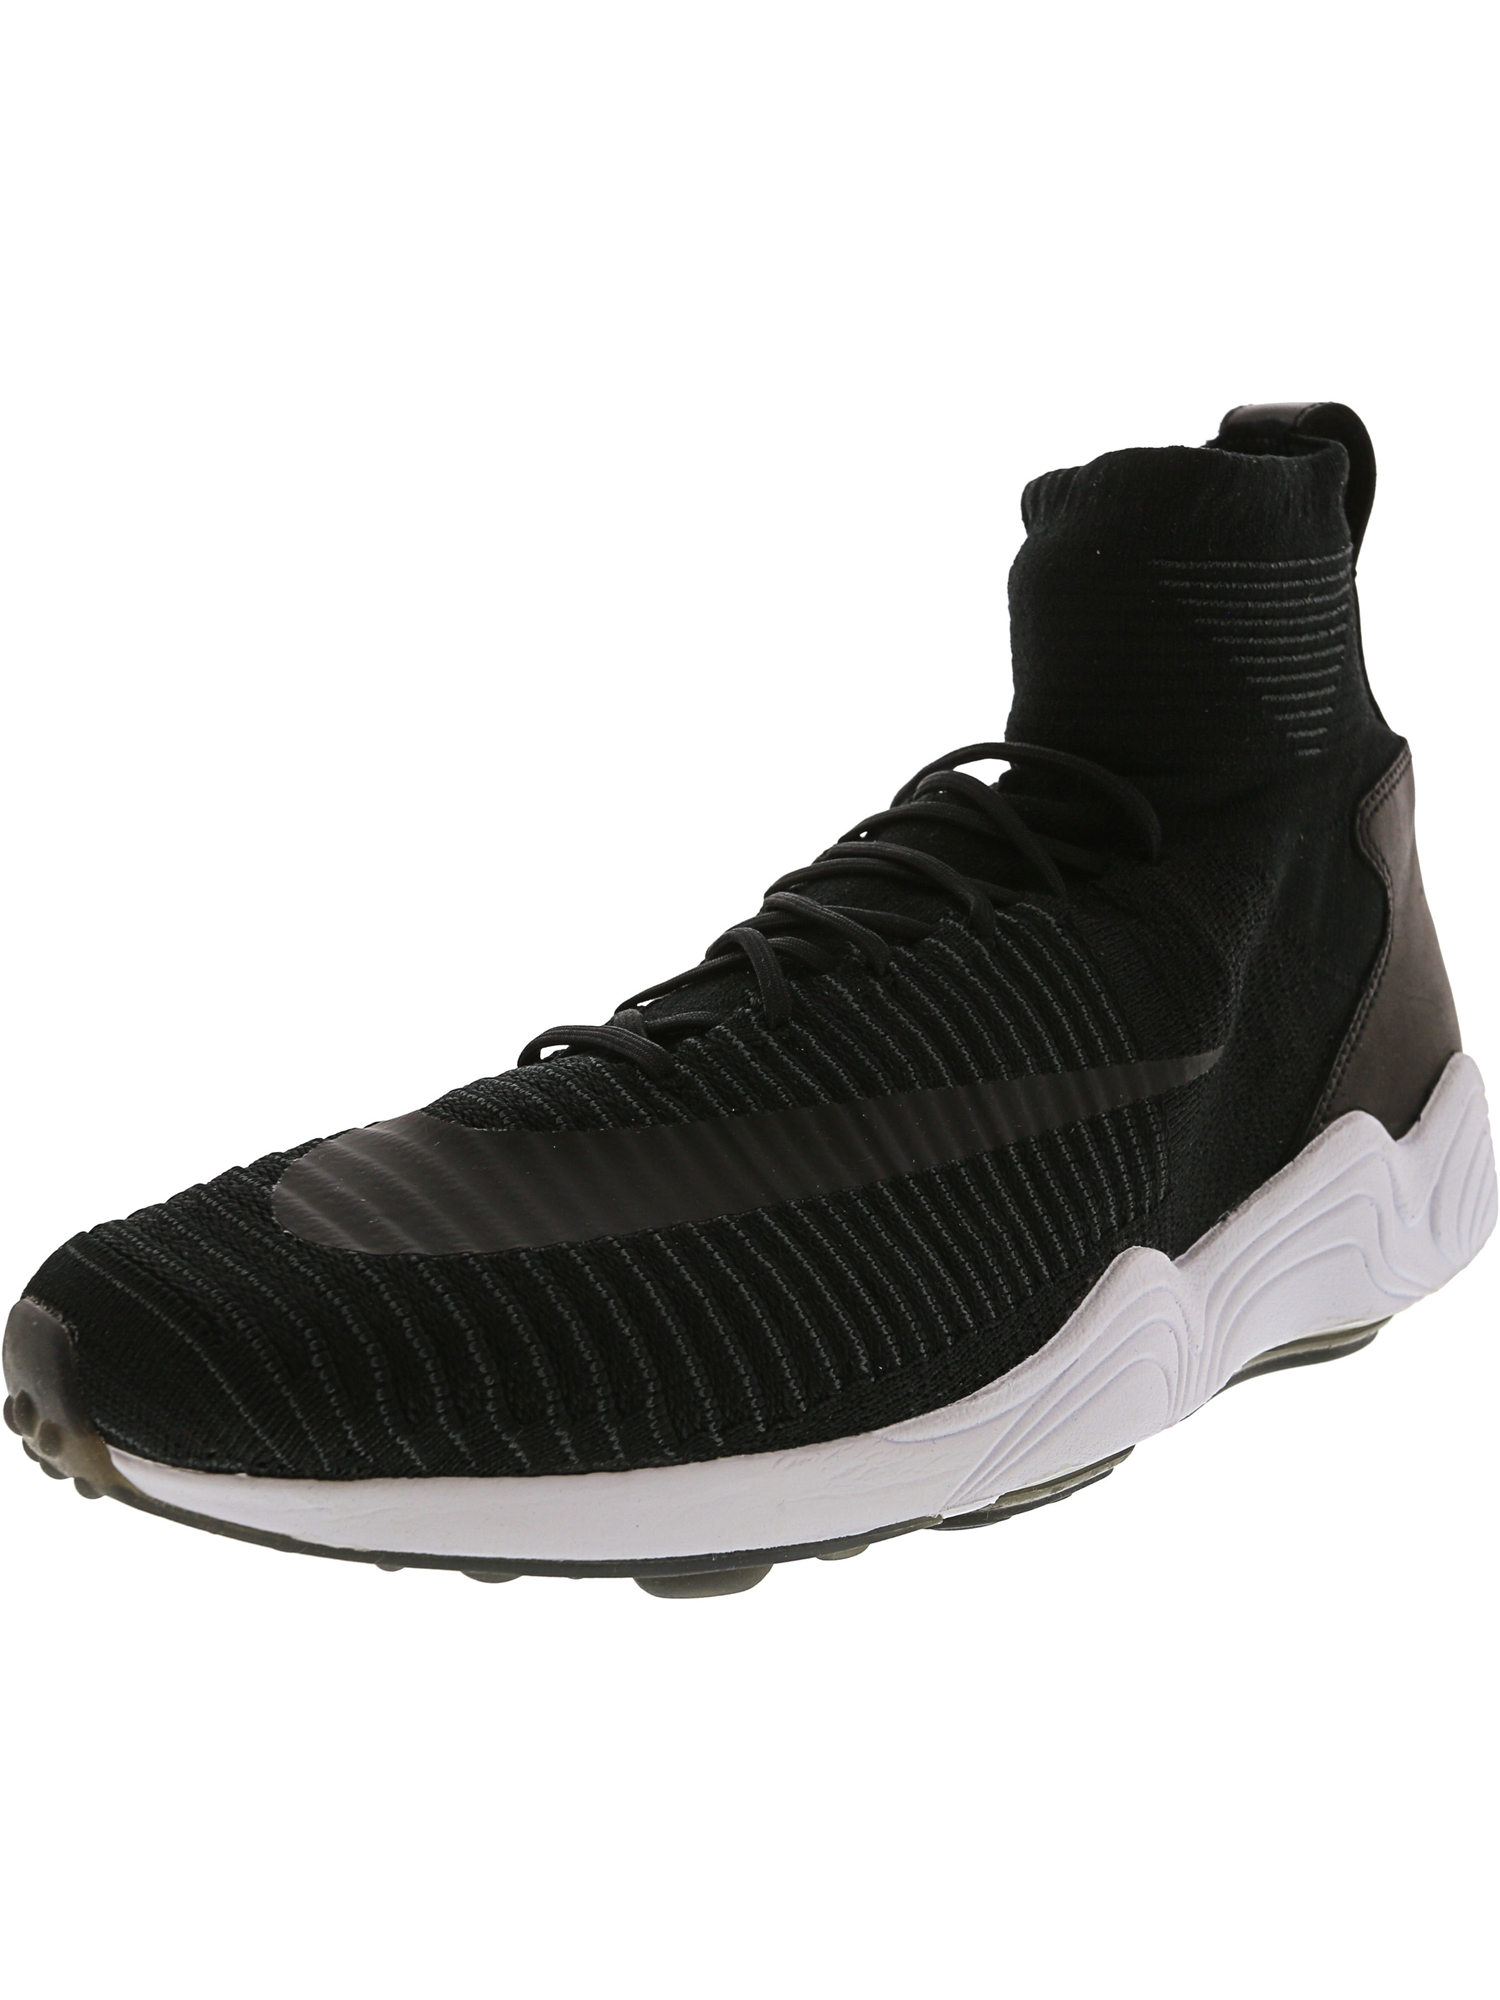 23b1d0a442ce0 Nike Men s Zoom Mecurial Xi Fk Black   - White Anthracite High-Top Running  Shoe 9M